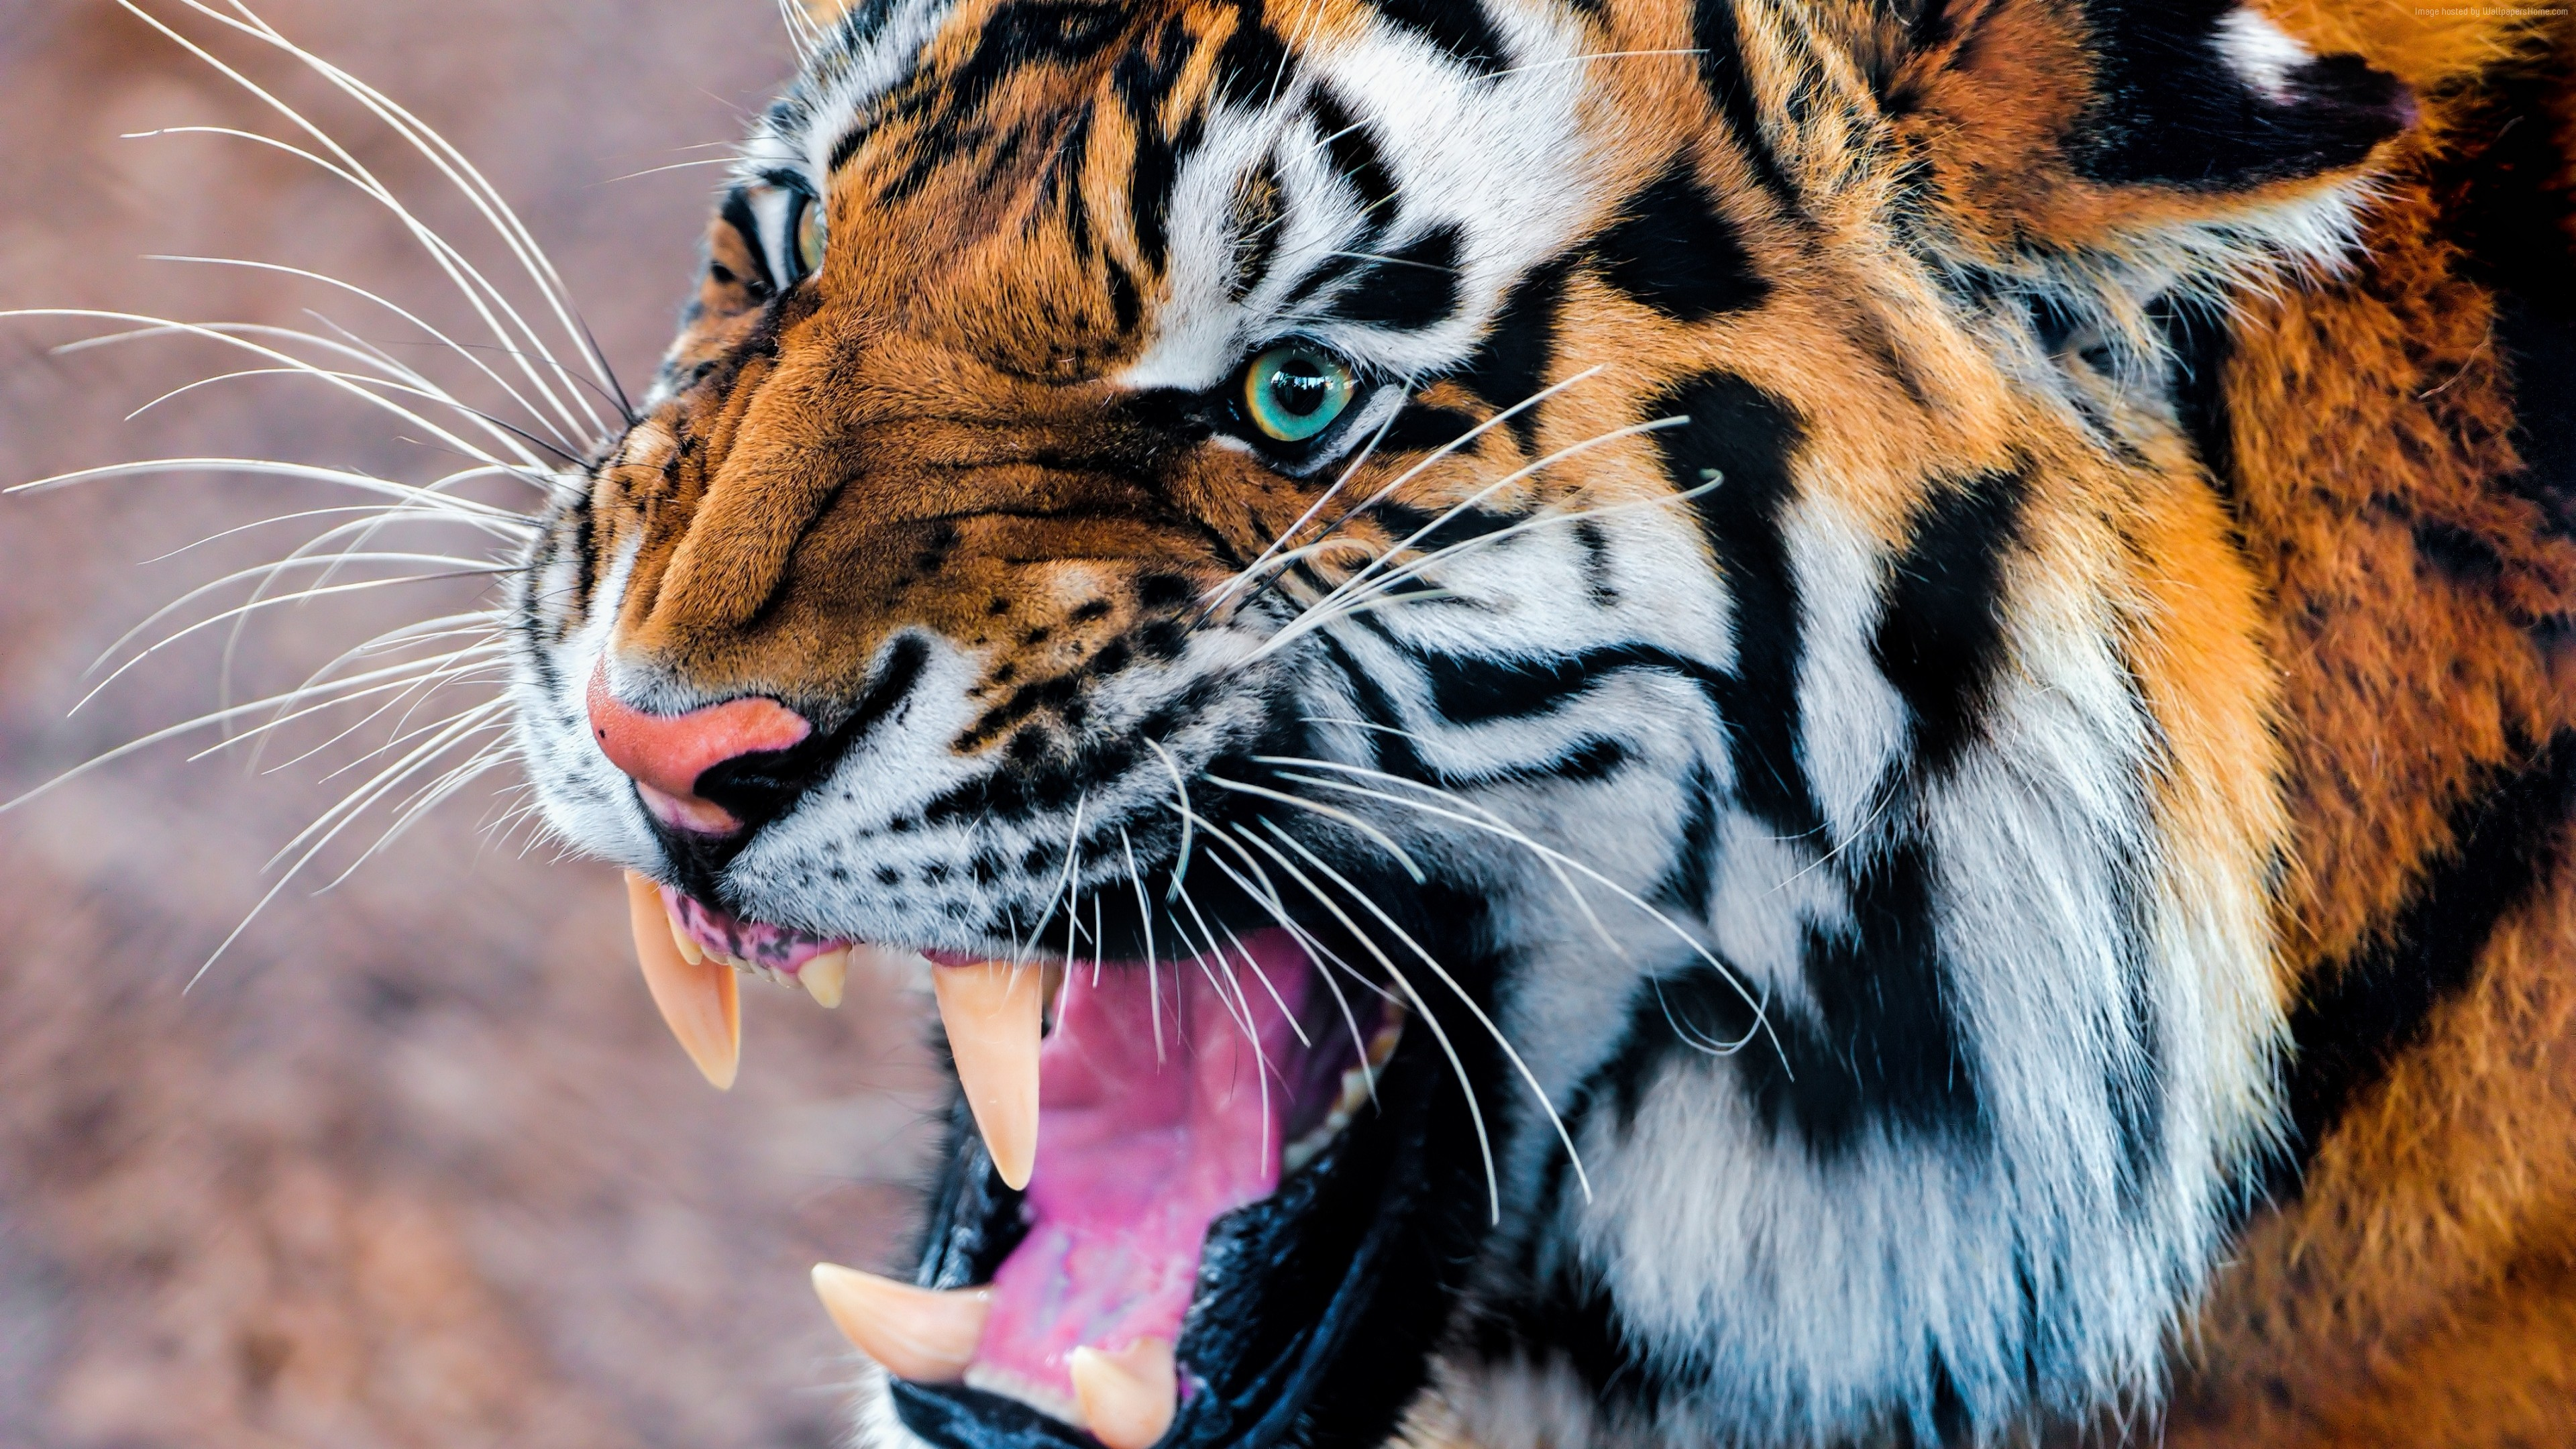 Wallpaper Tiger, snarling, eyes, fur, Animals